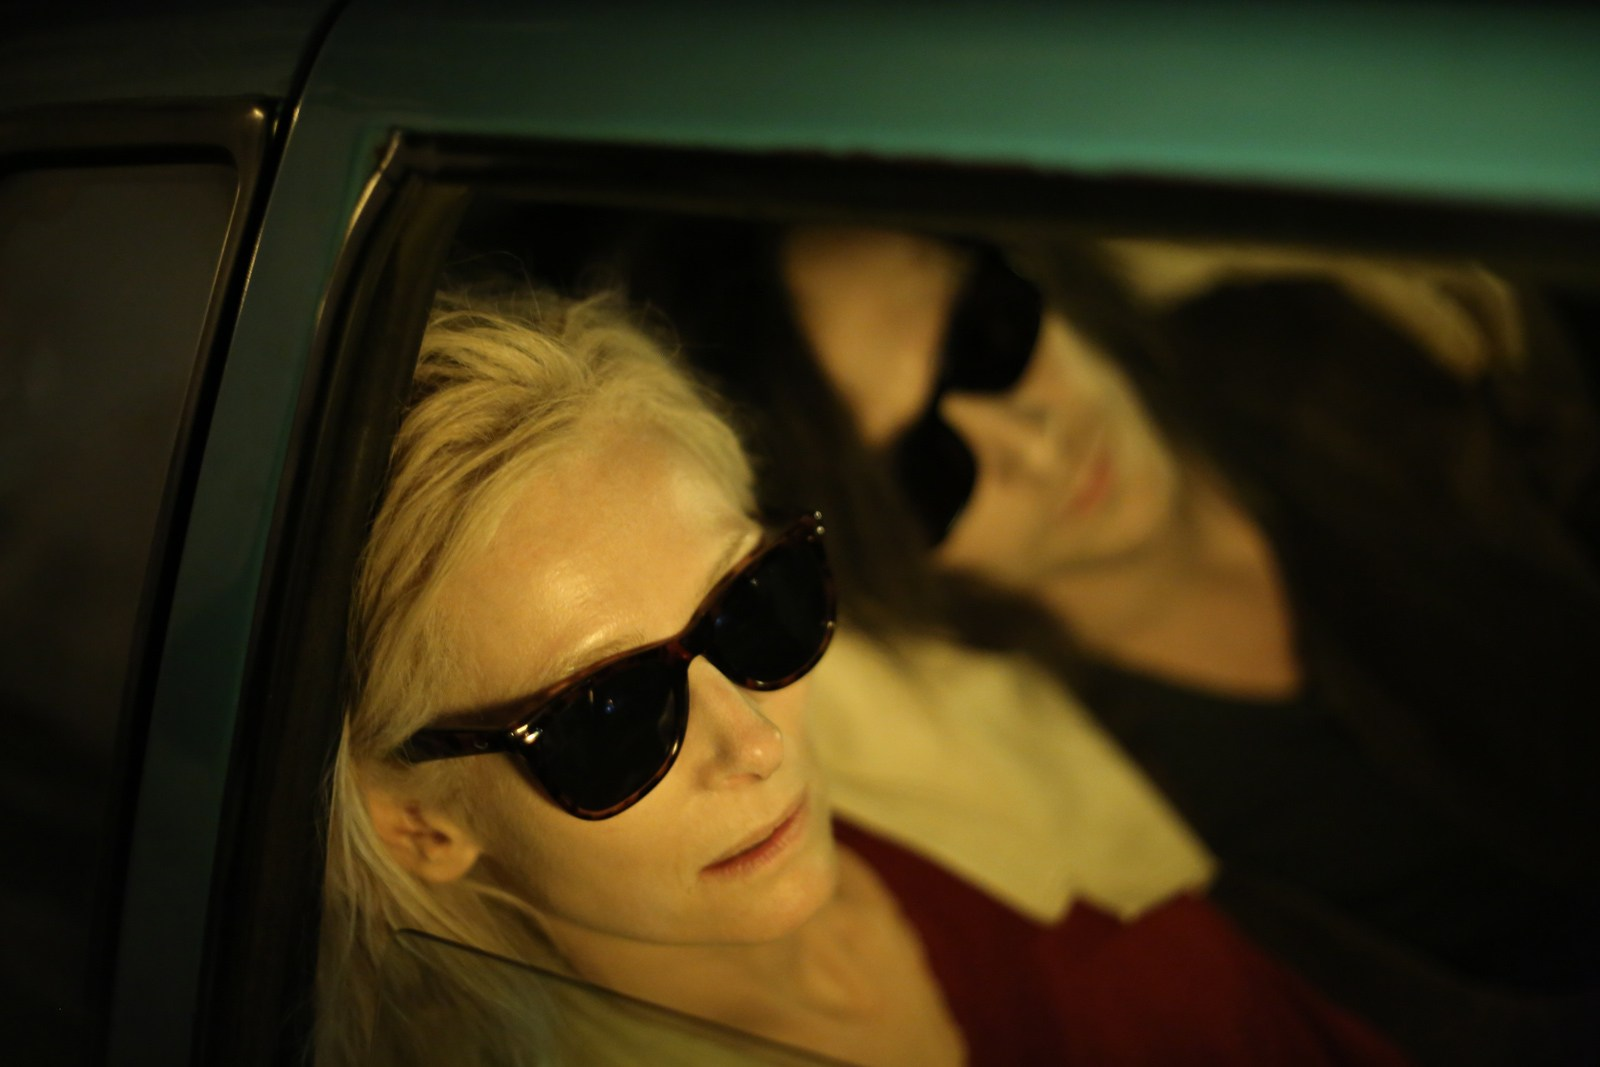 [critique] ONLY LOVERS LEFT ALIVE